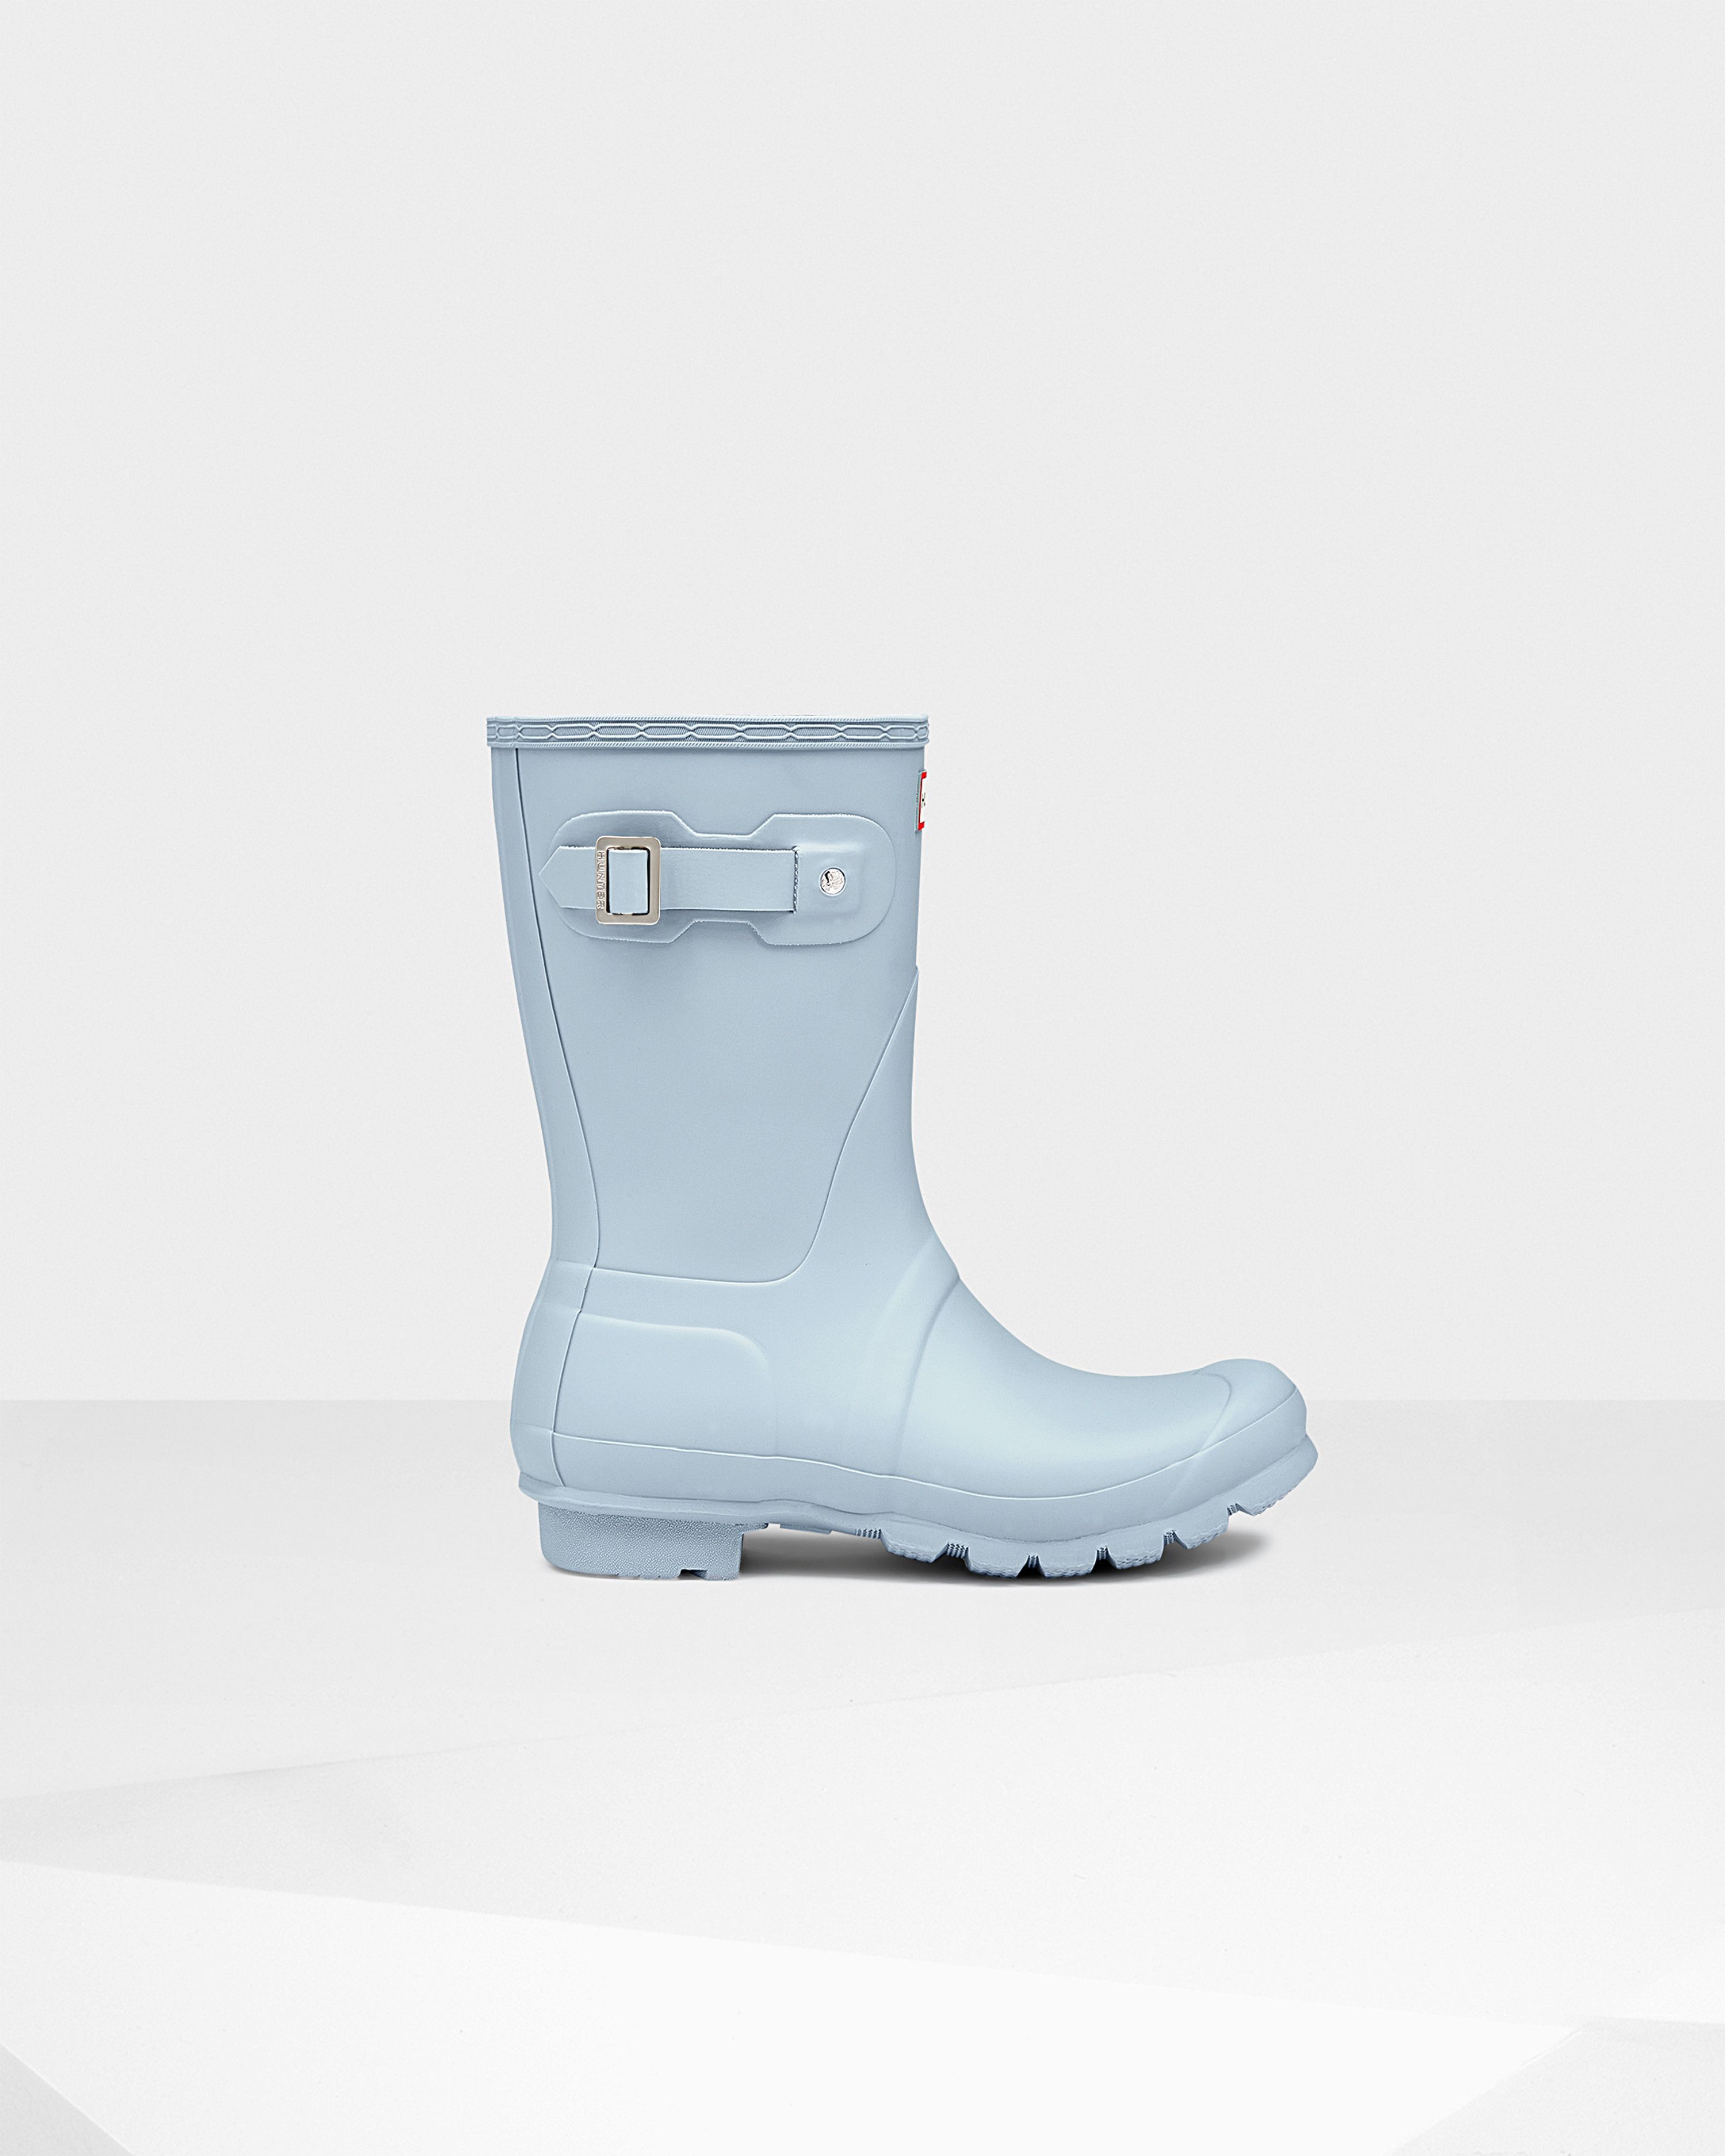 Innovative Slip Resistant Rubber Boots Food Boots White Rain Boots Fashion Rain Boots Knee High Wear ...